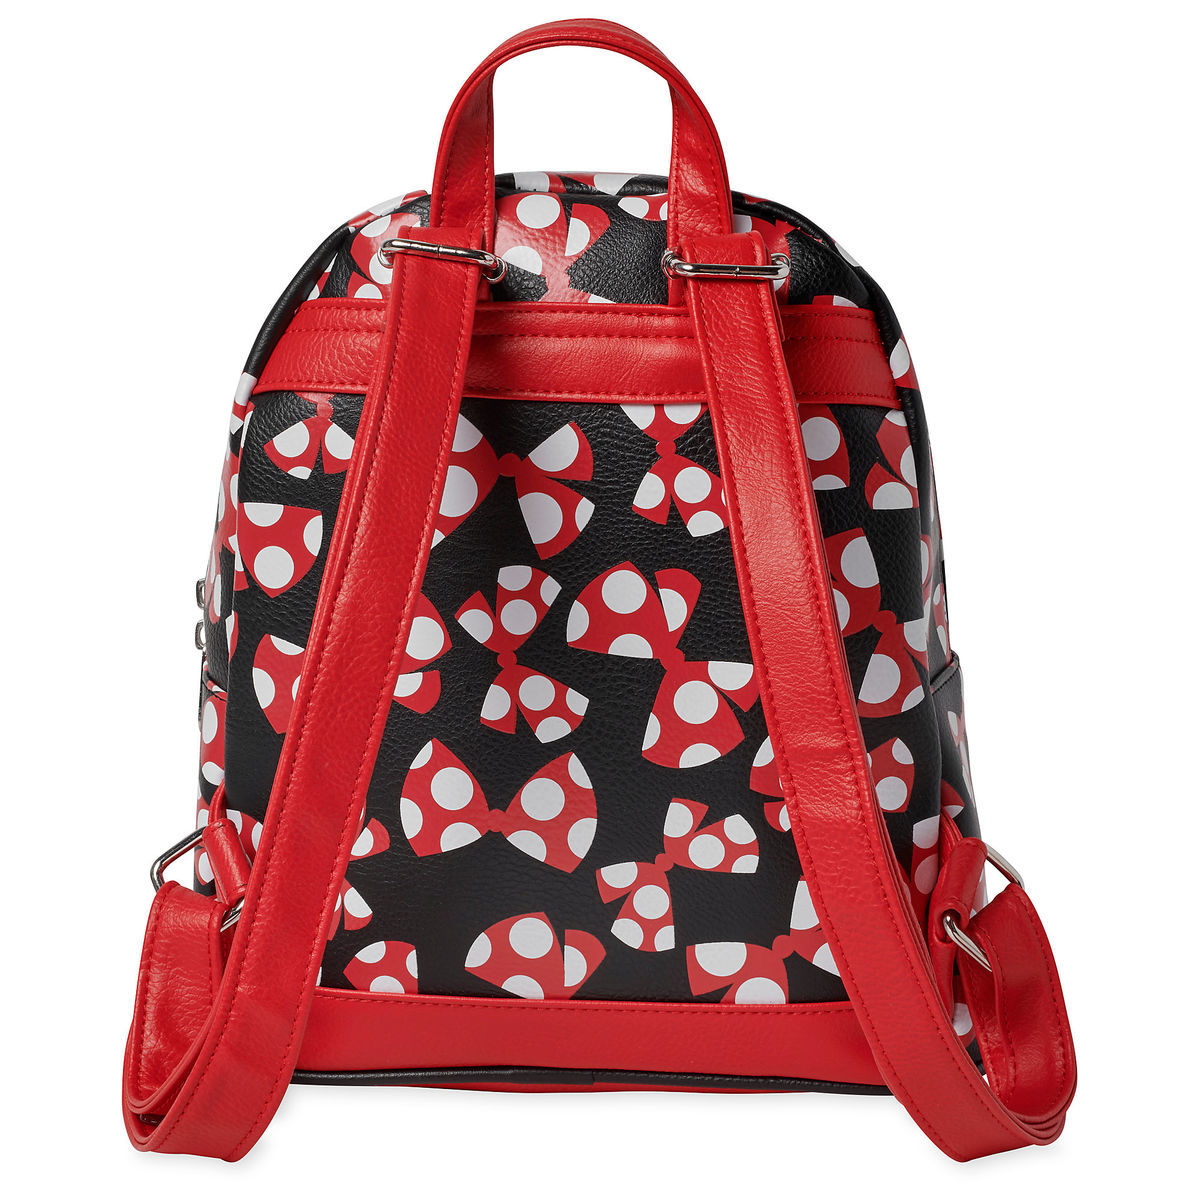 59d86240bc7 Disney Mini Backpack - Minnie Mouse Bows